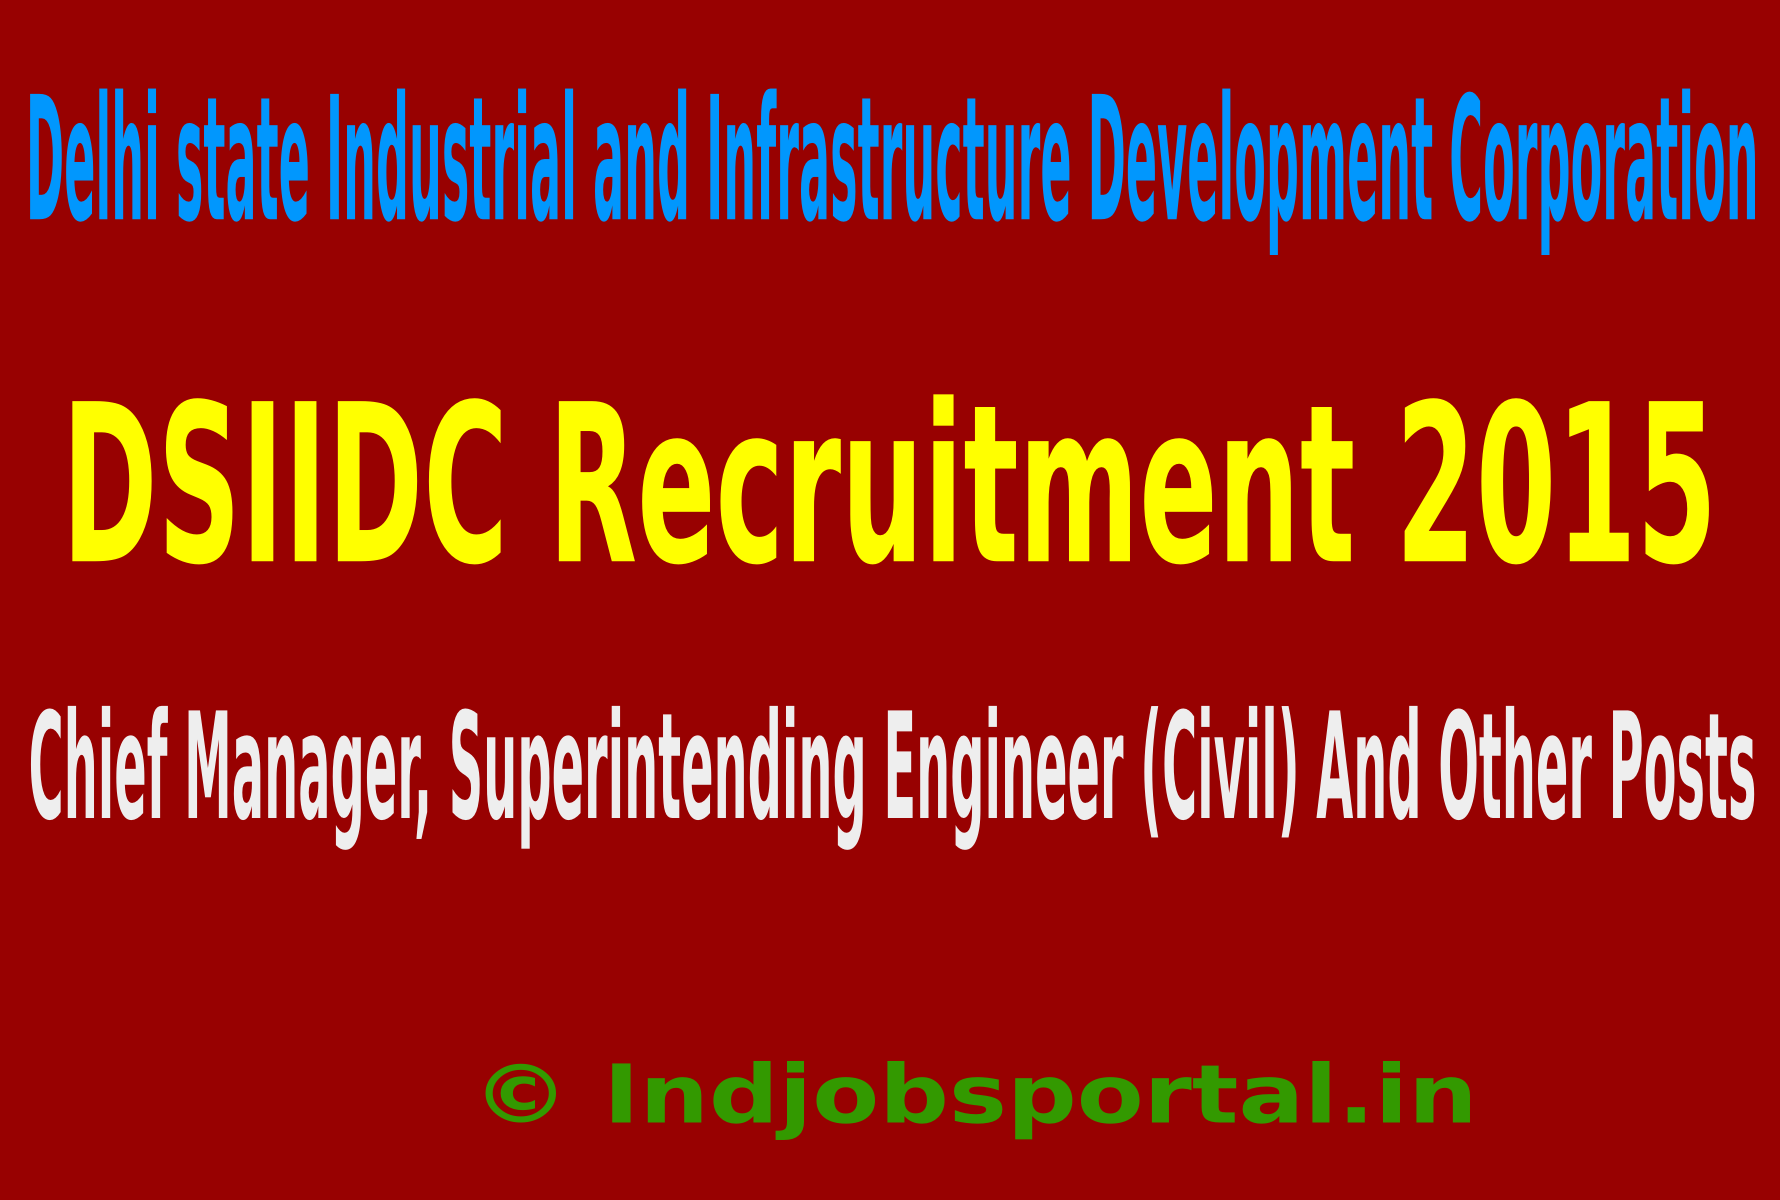 DSIIDC Recruitment 2015 For 64 Chief Manager, Superintending Engineer (Civil) And Other Posts